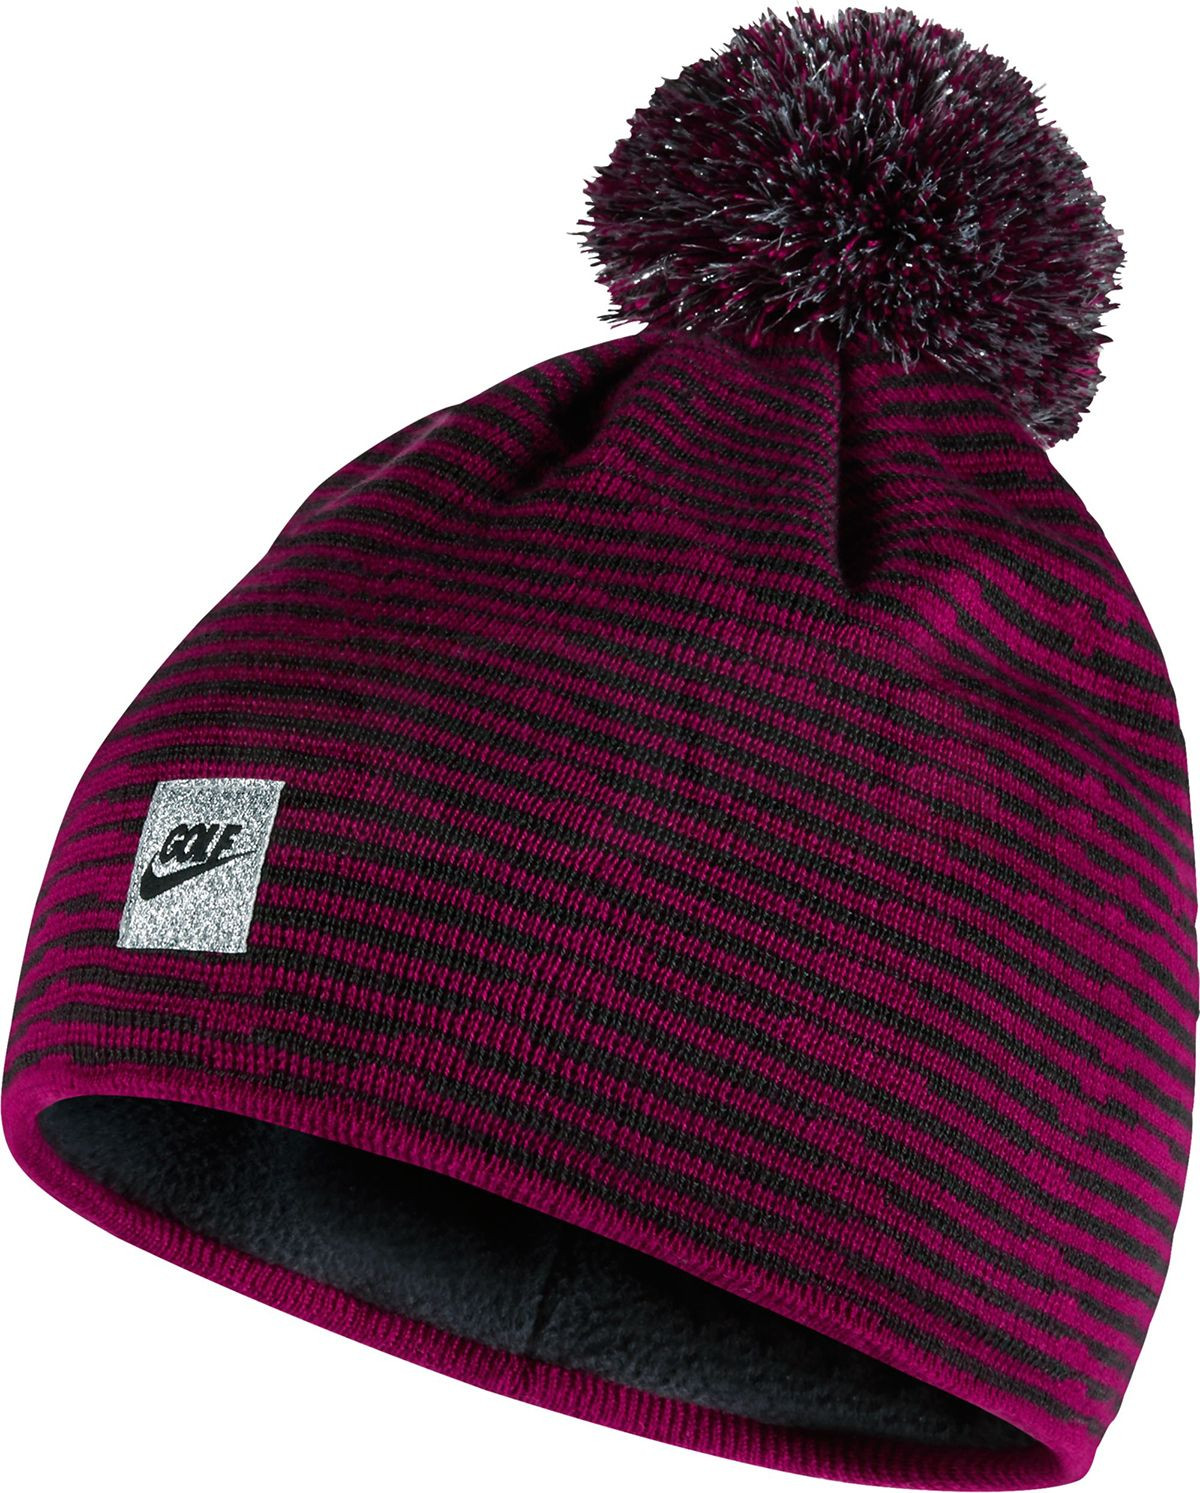 Best Of Nike Women S Camo Animal Knit Hat Ladies Knitted Hats Of Adorable 50 Pictures Ladies Knitted Hats